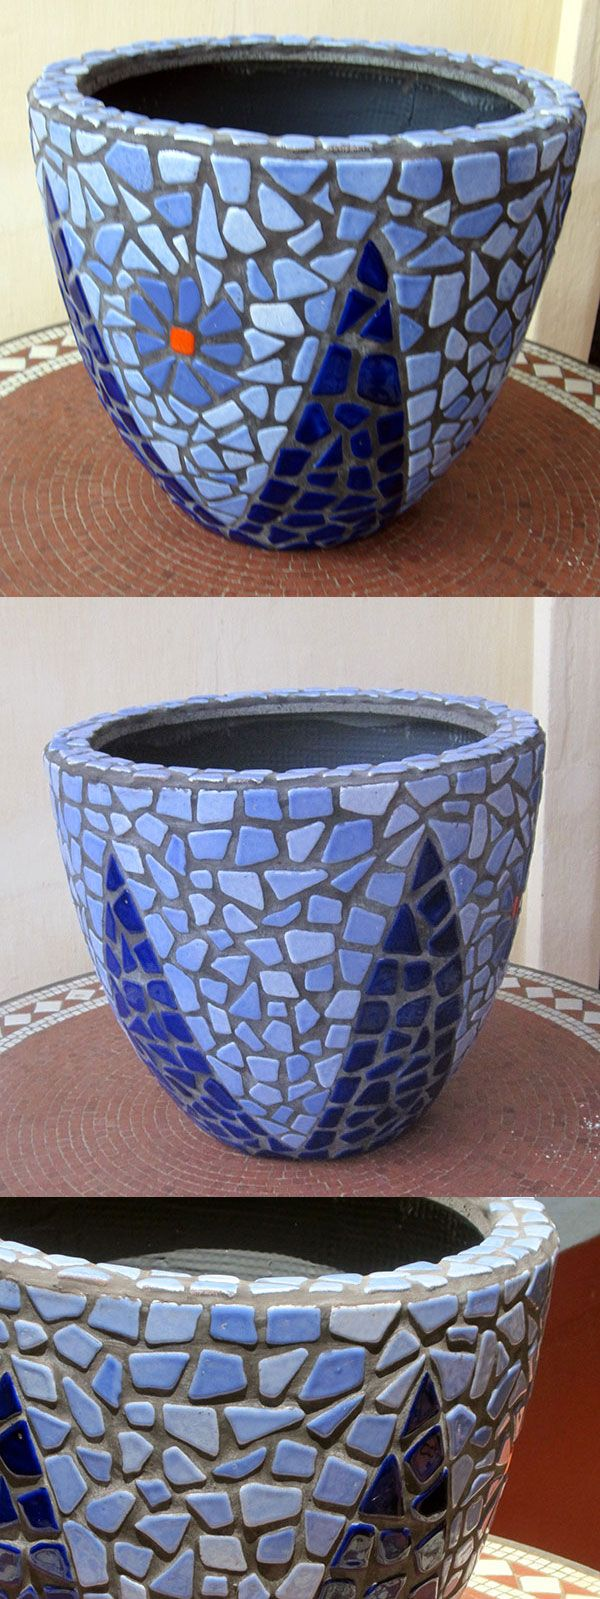 DIY Mosaic Blue Flower Pot - Mosaik Blumentopf - Mosaique Pot de Fleur - Broken Ceramic Tiles - Craft By Alea Mosaik Más